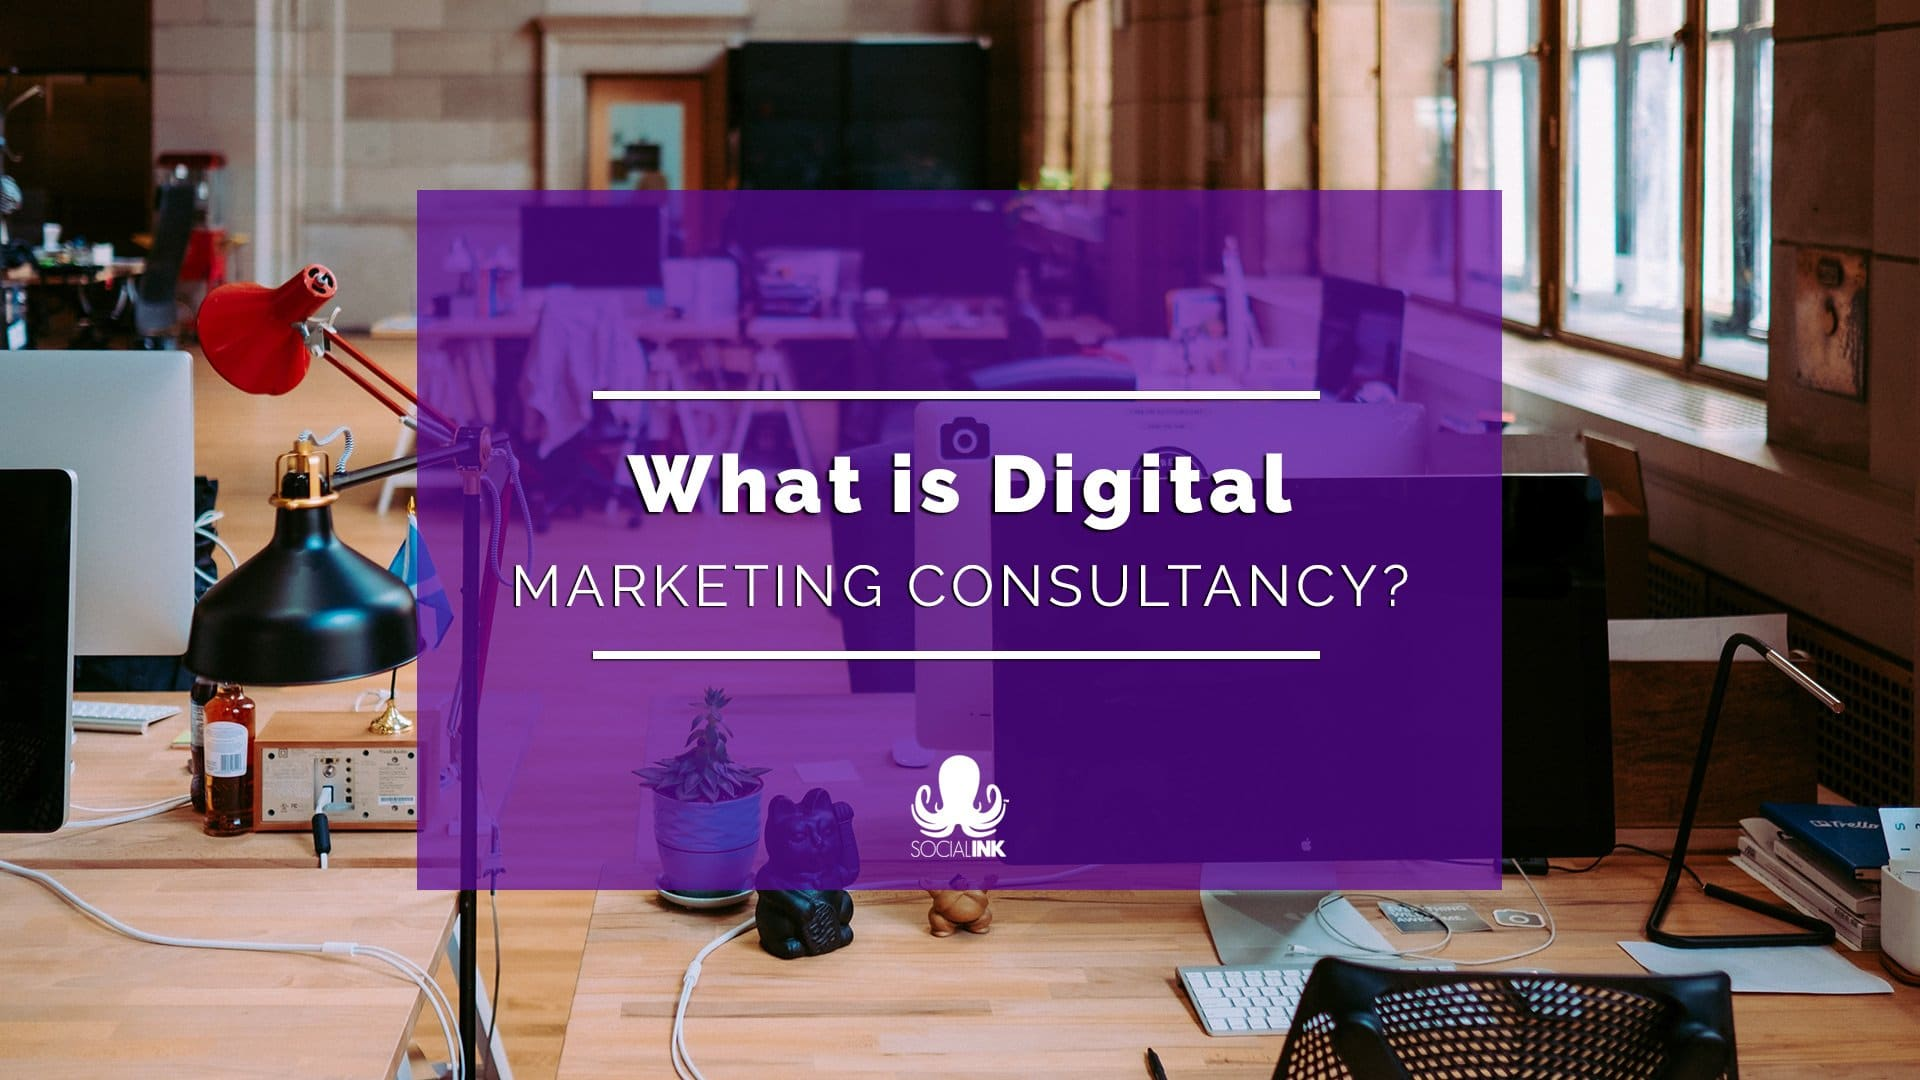 What Is Digital Marketing Consultancy?